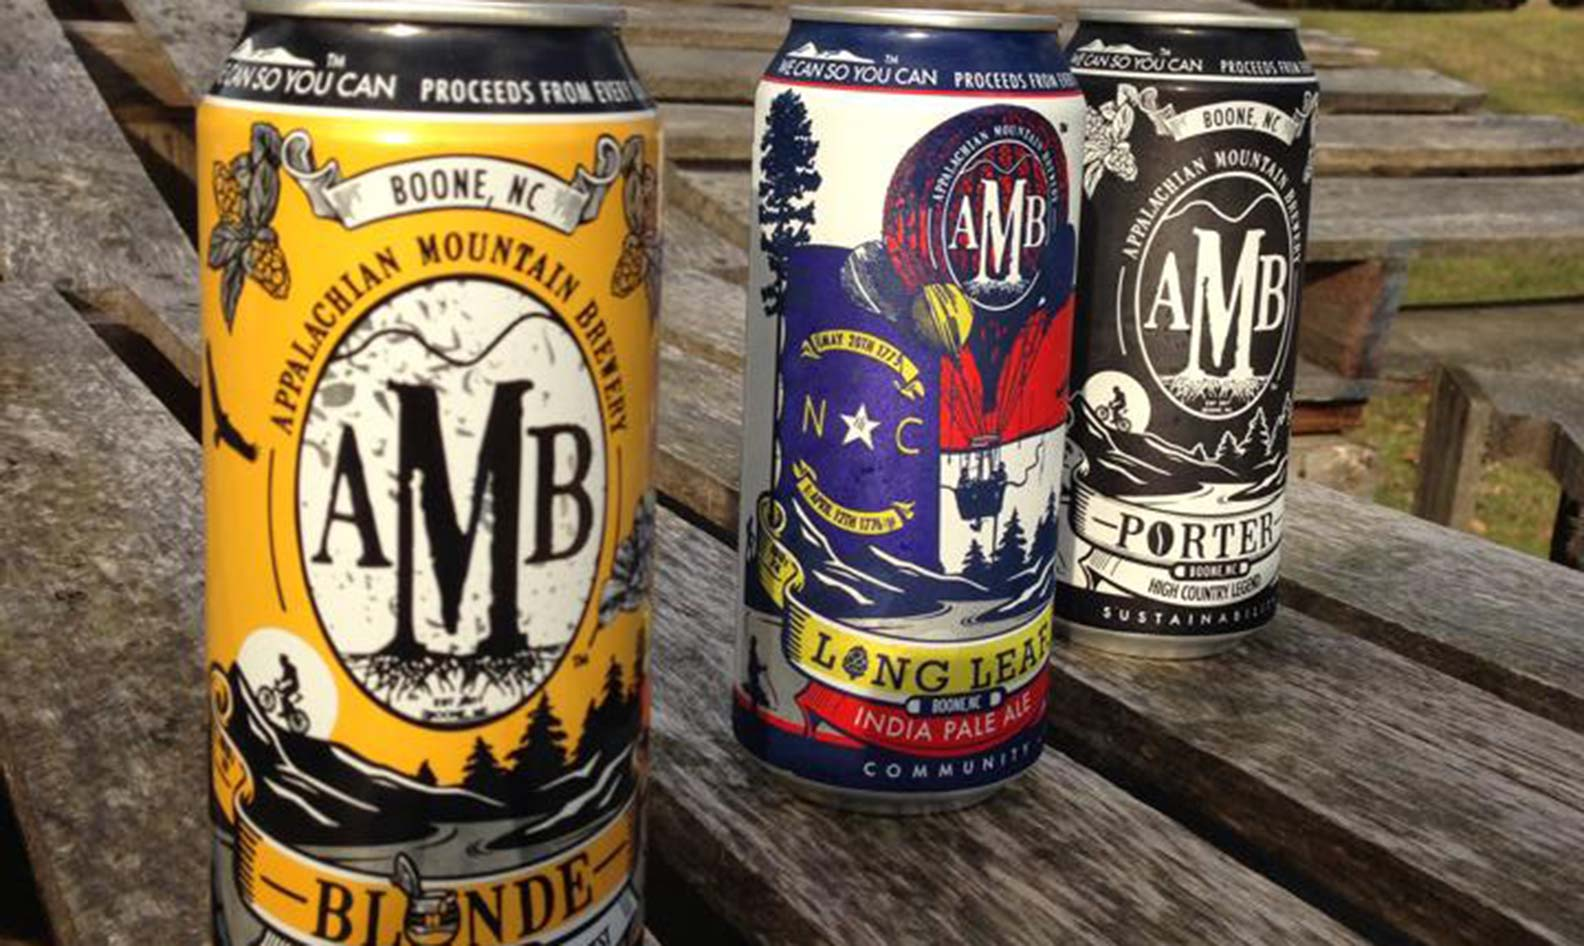 Appalachain Mountain beers